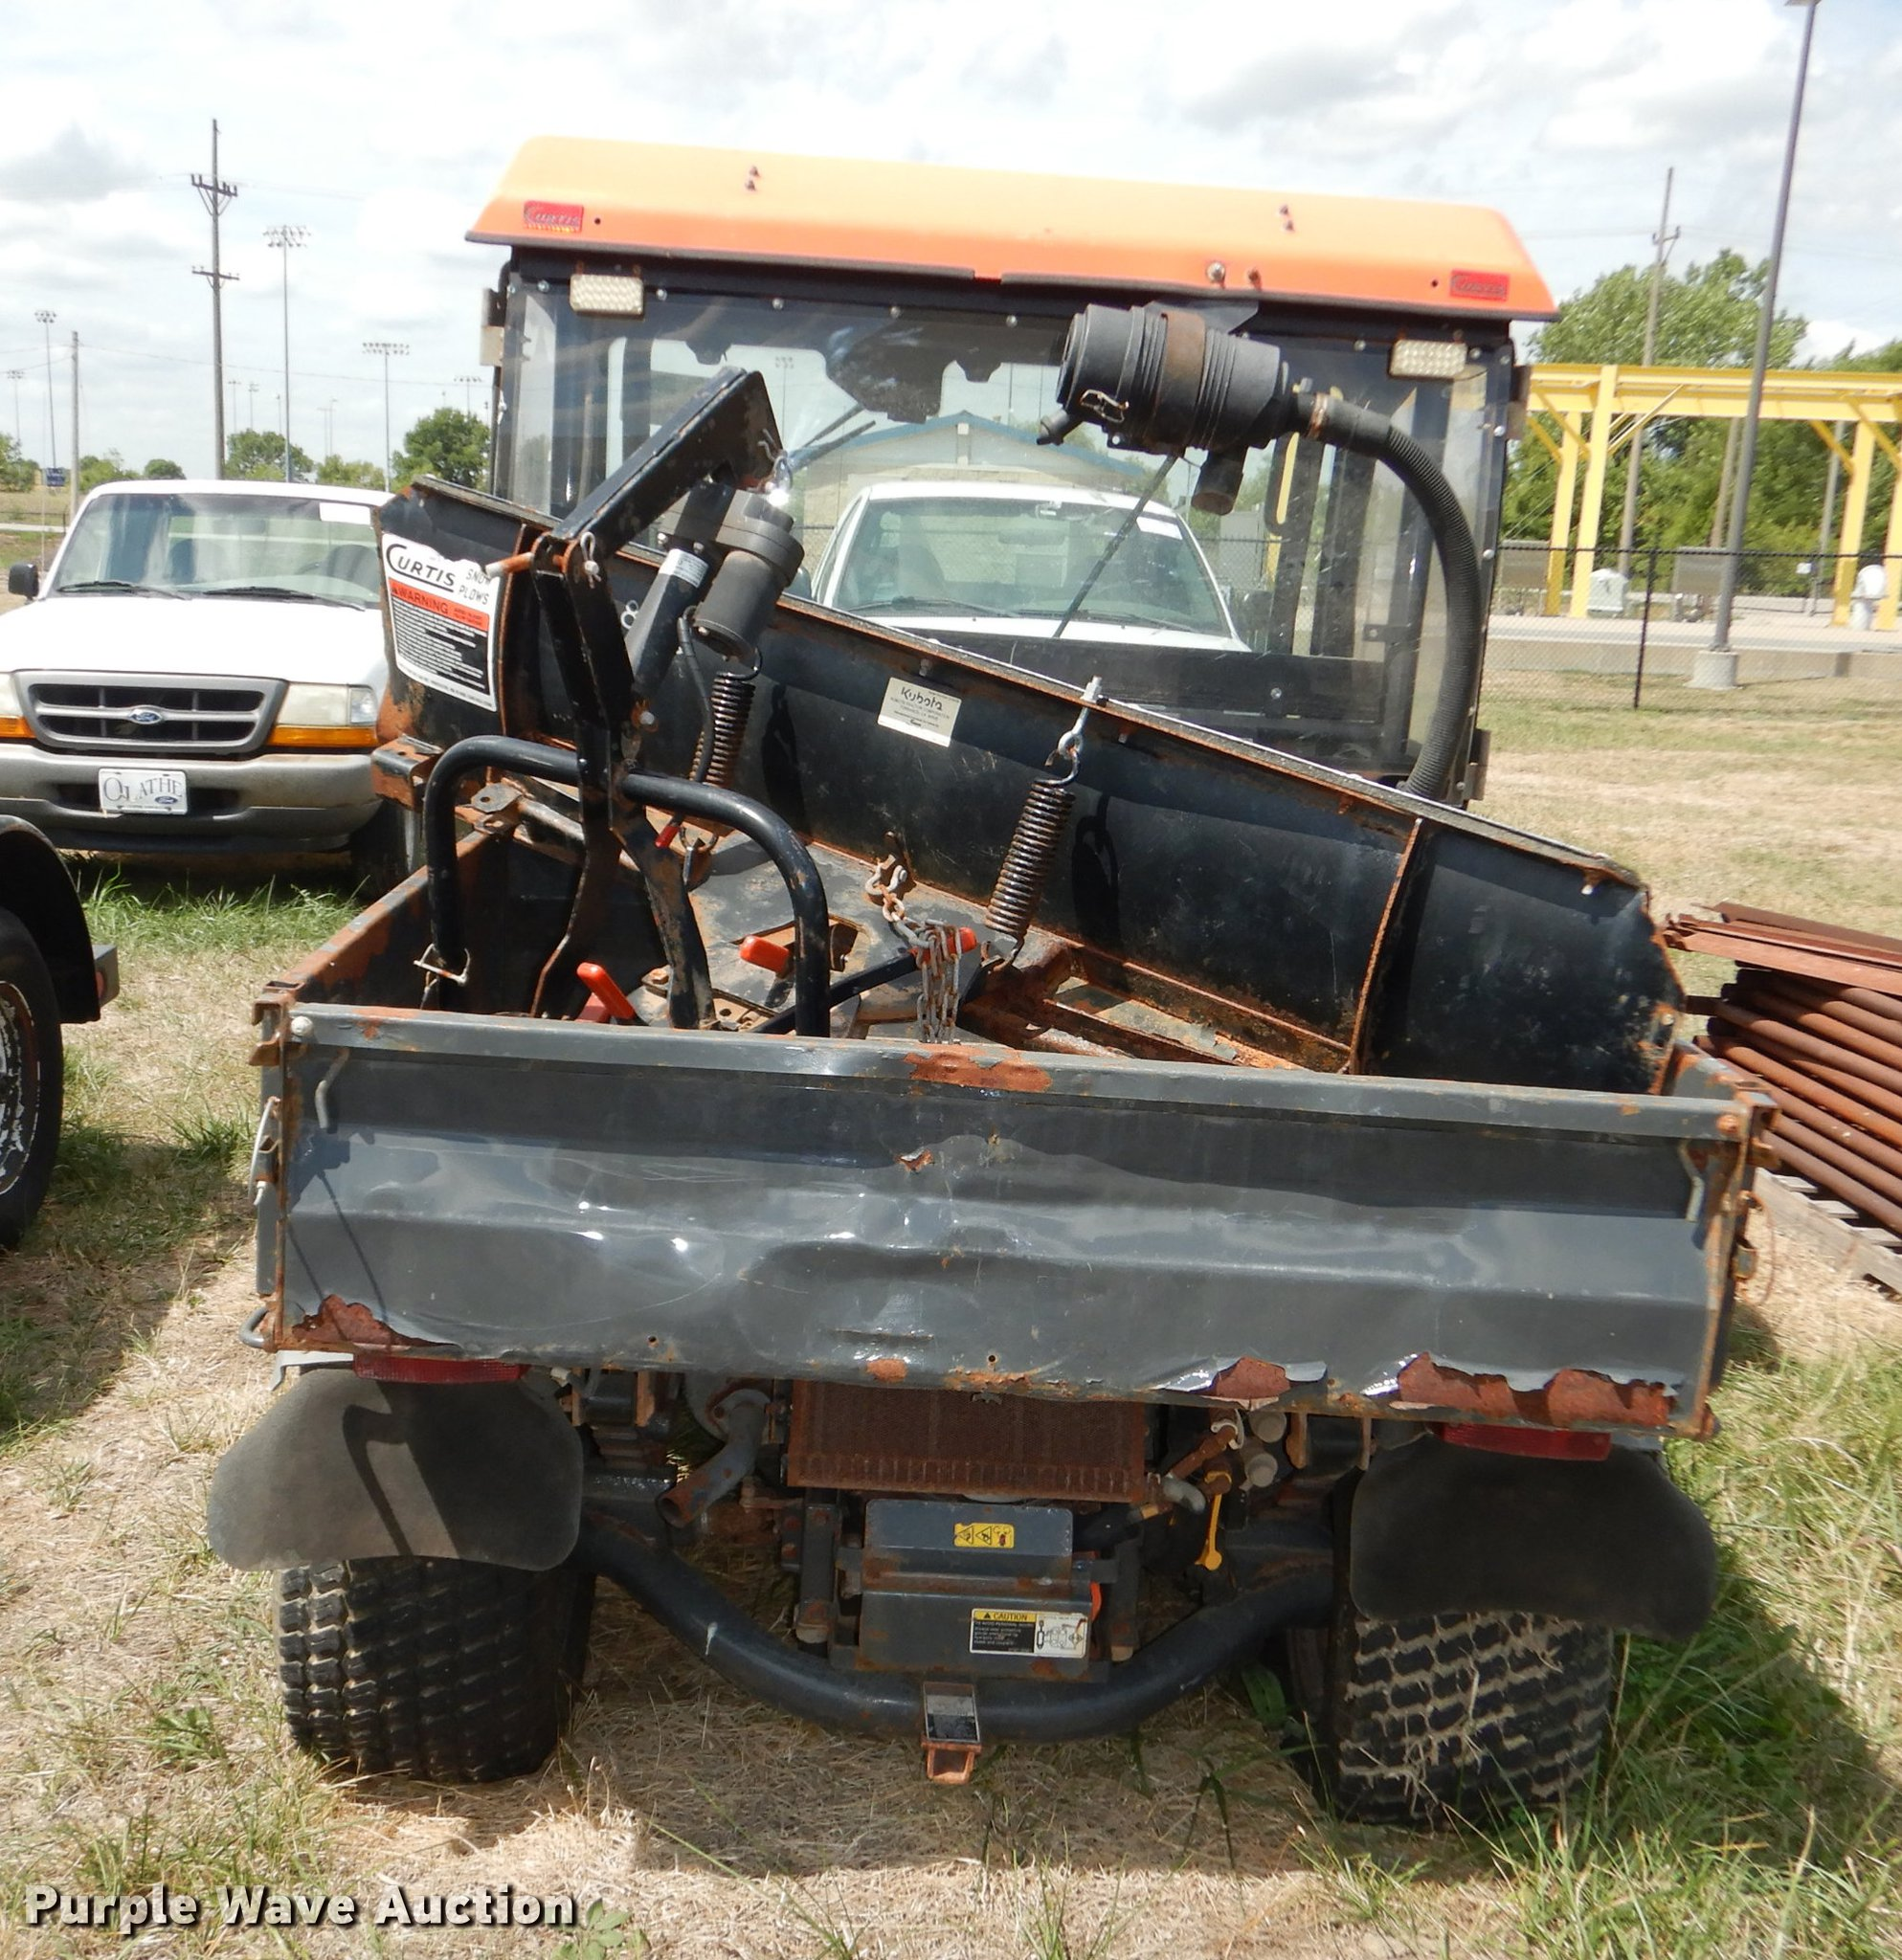 2007 Kubota RTV900 utility vehicle | Item DB8287 | SOLD! Sep